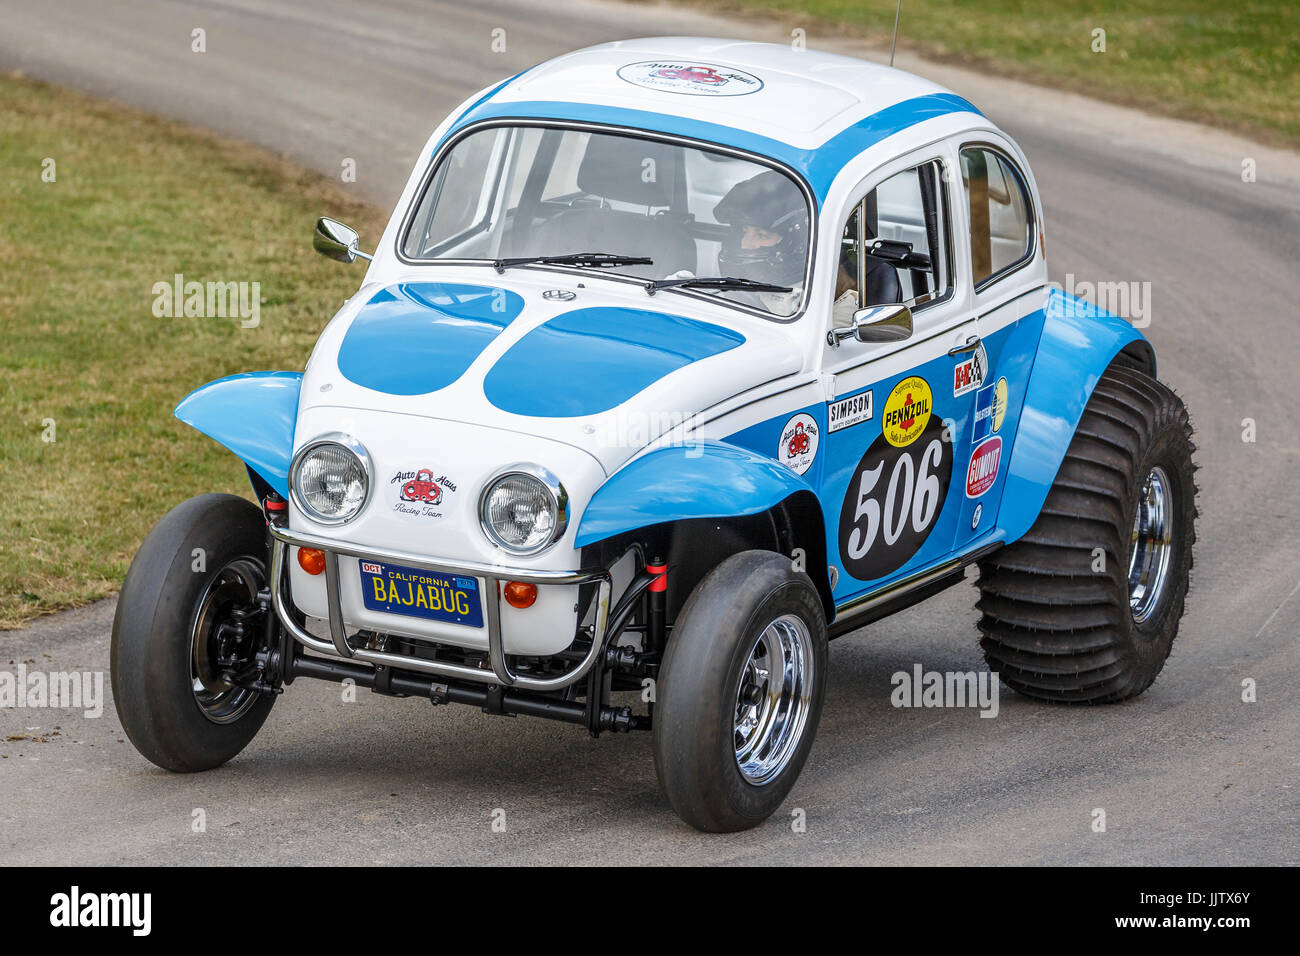 1979 Tamiya Sand Scorcher, Baja Volkswagen Beetle repro of the model toy at the 2017 Goodwood Festival of Speed, - Stock Image